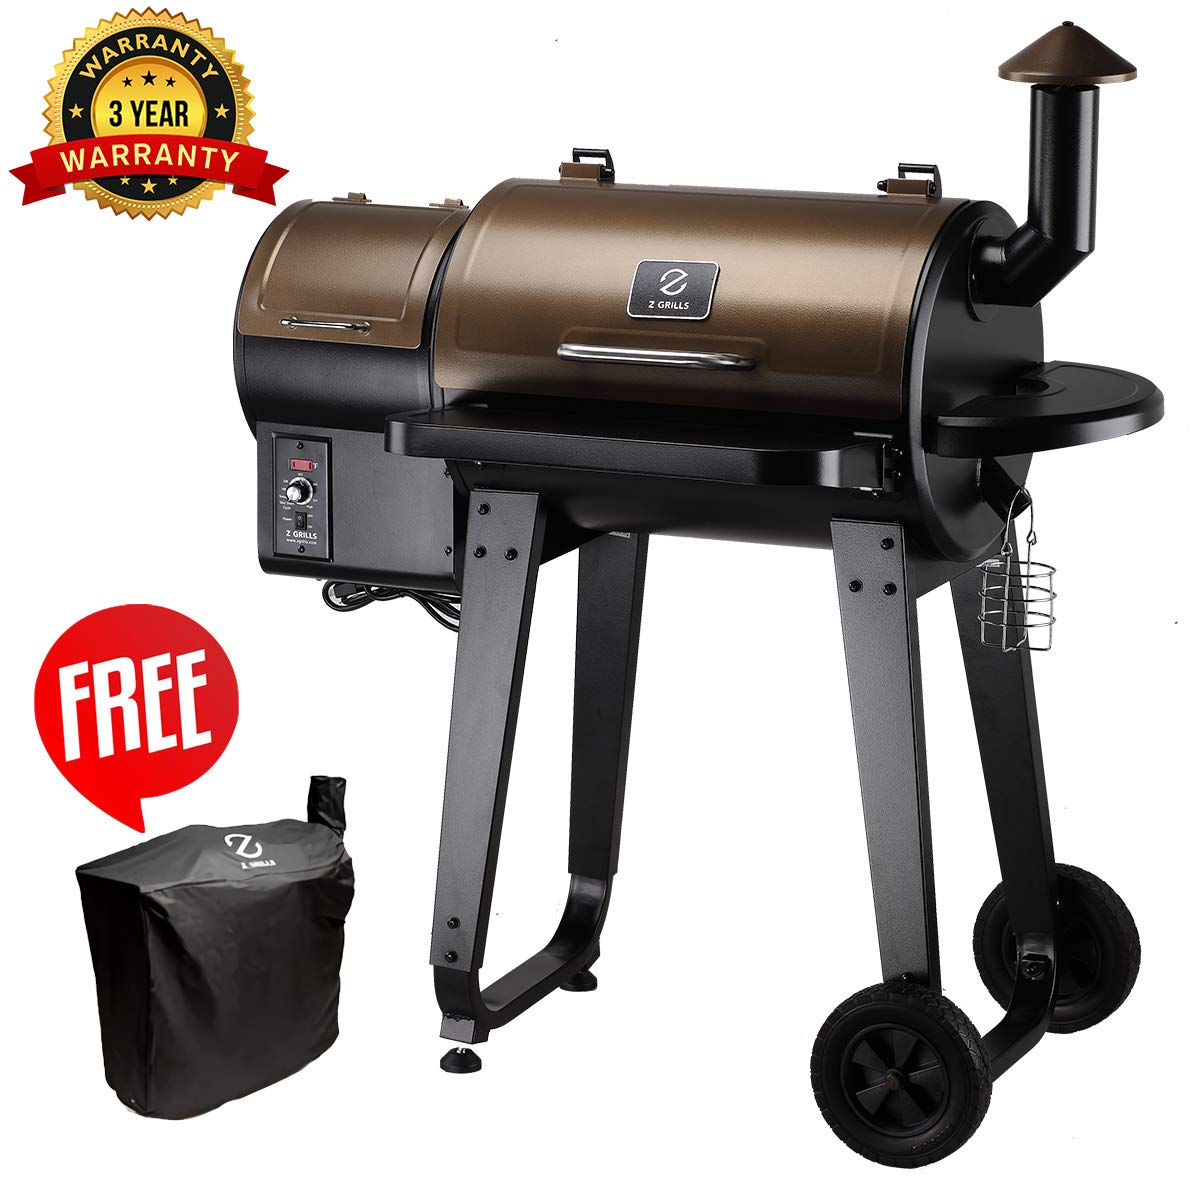 Z GRILLS Wood Pellet Grill & Smoker with Digital Temperature Controls, 450 sq. in. Cooking Capacity - Grill, Smoke, Bake, Sear, Roast, Braise and BBQ by Z GRILLS